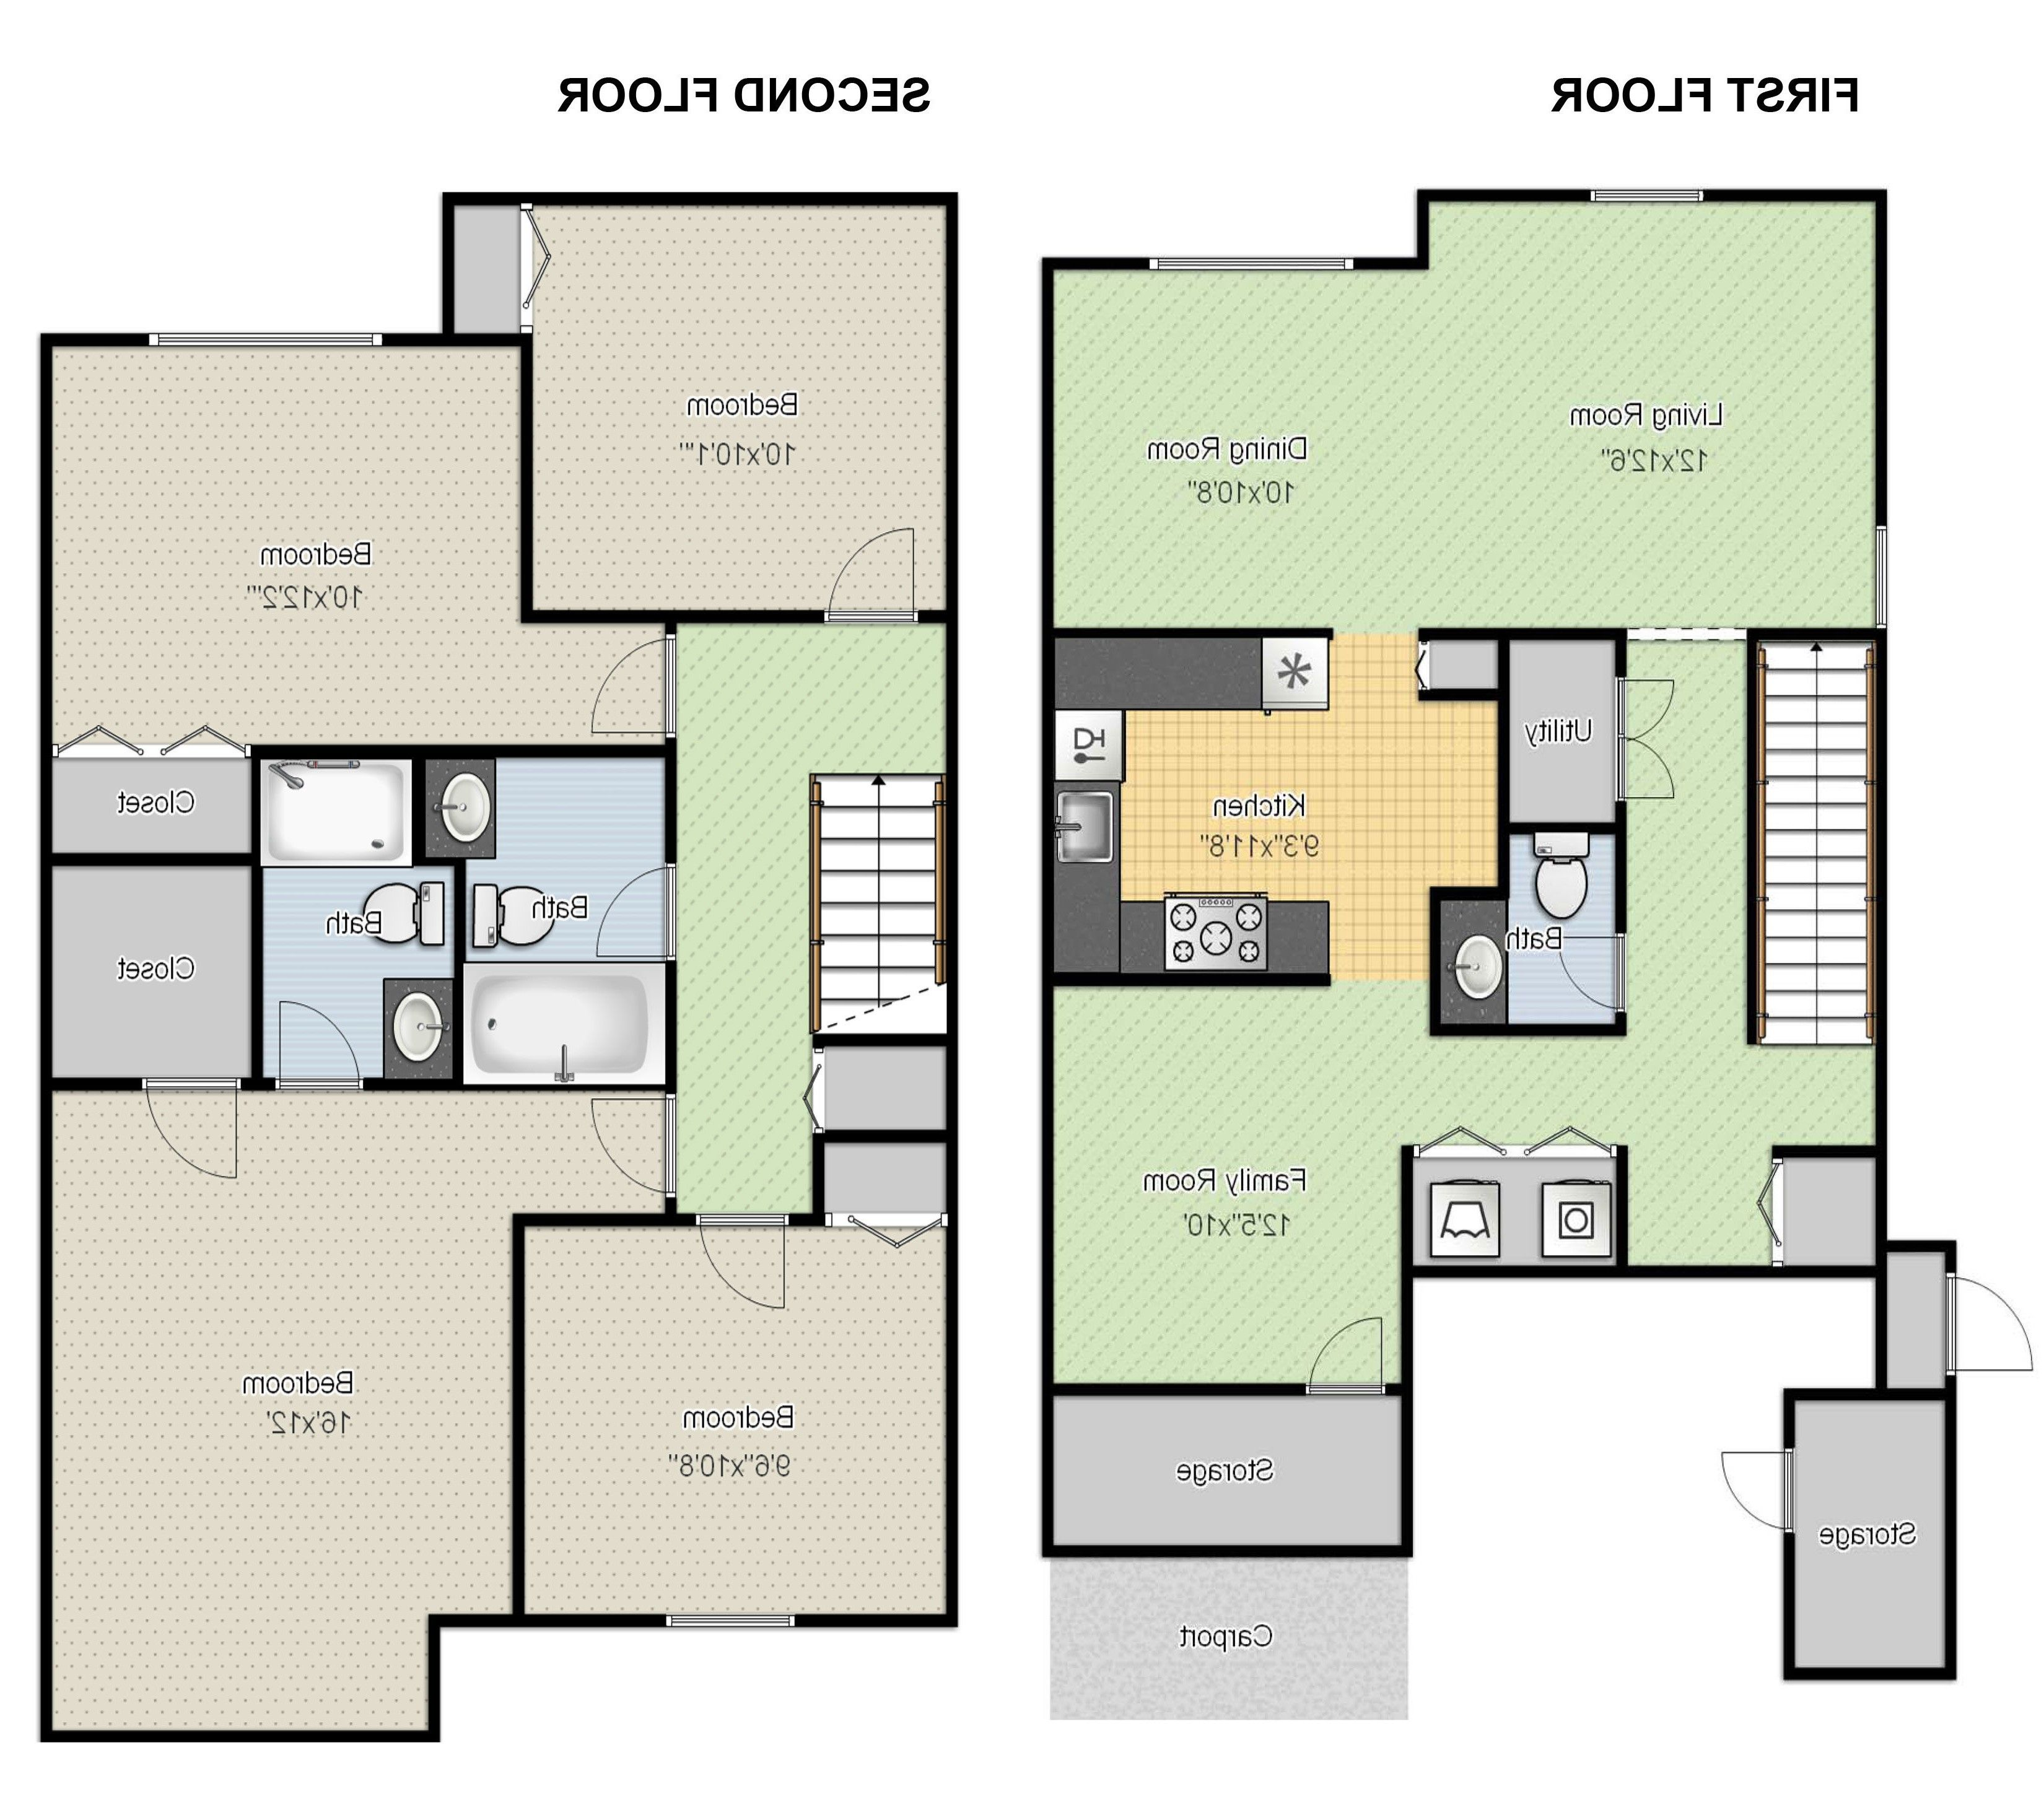 Make your own house plans online for free  home designer suite x brilliant free basement design from